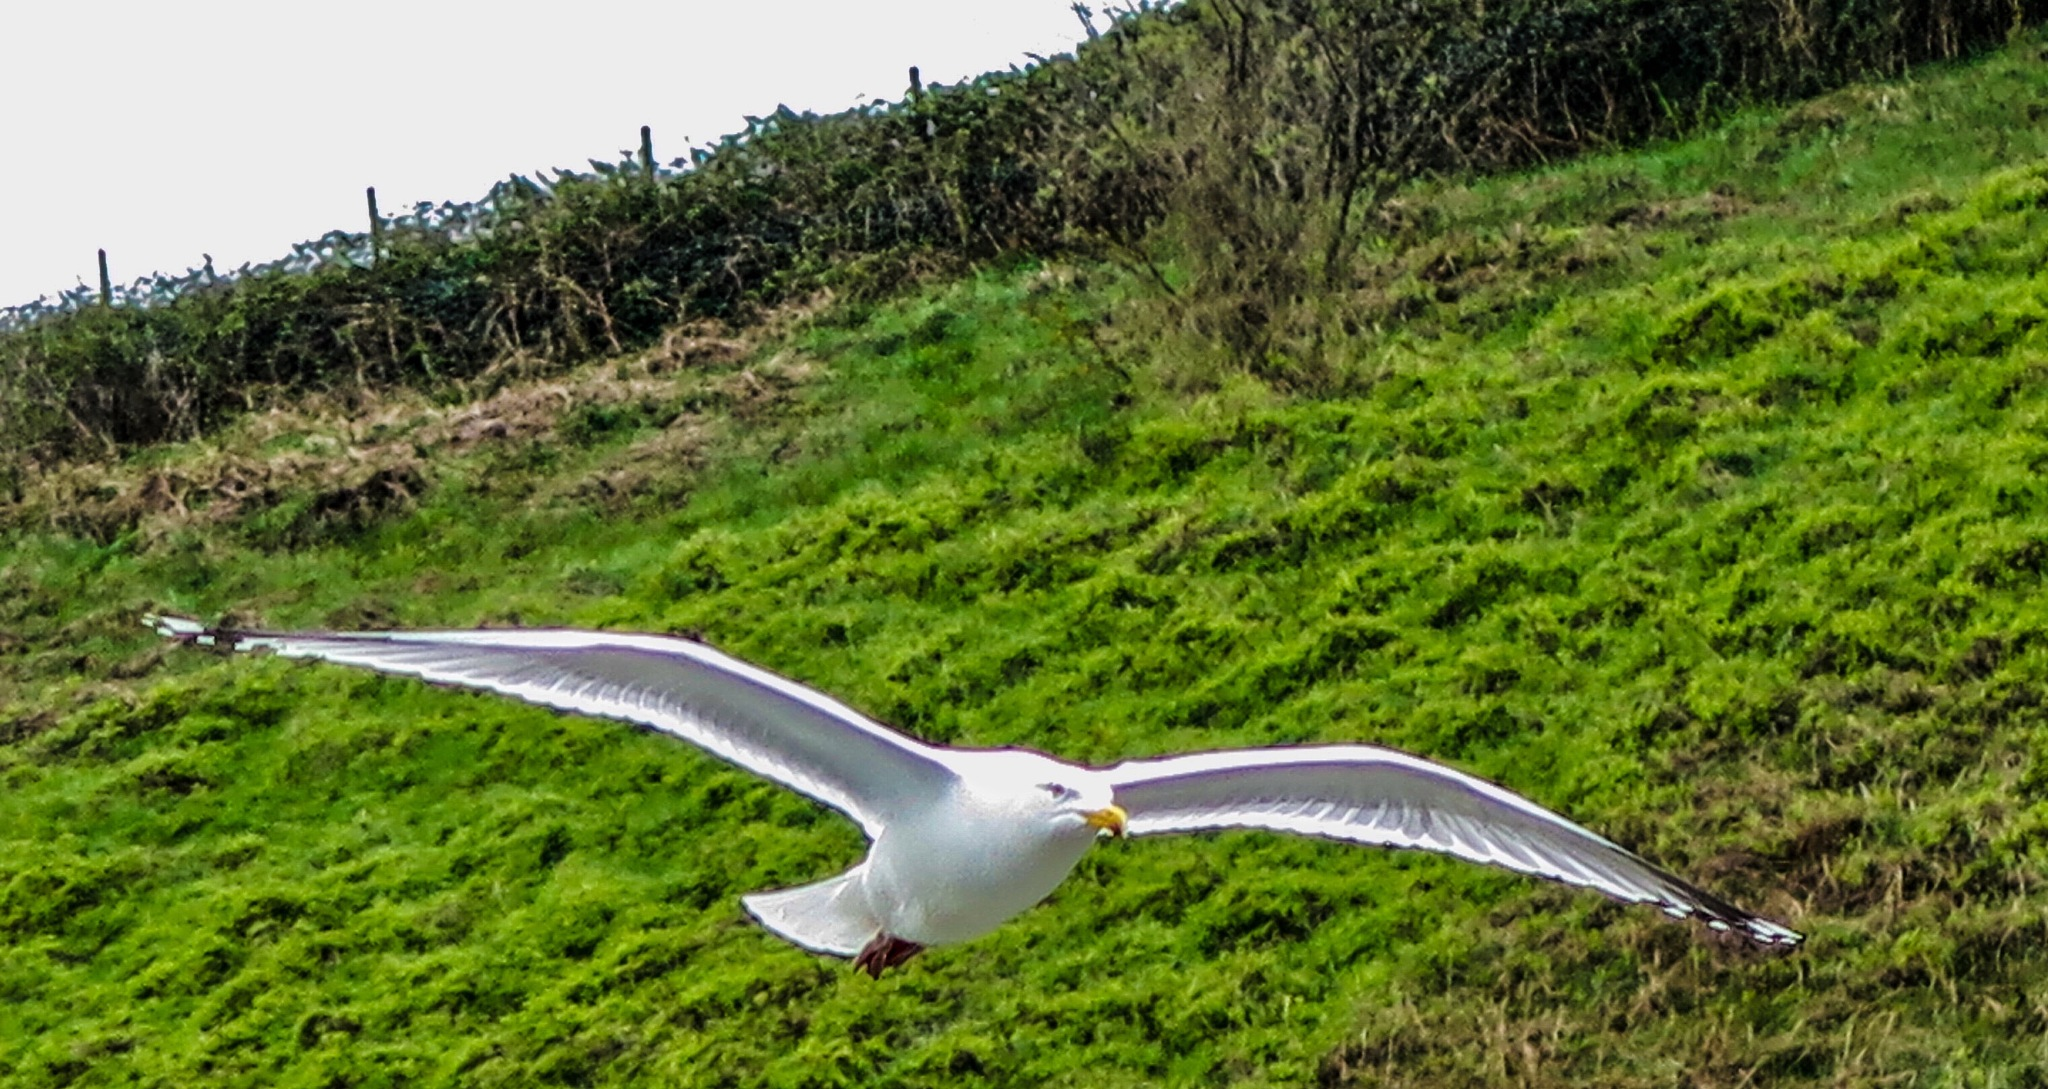 A seagull in flight by Terry Reynolds